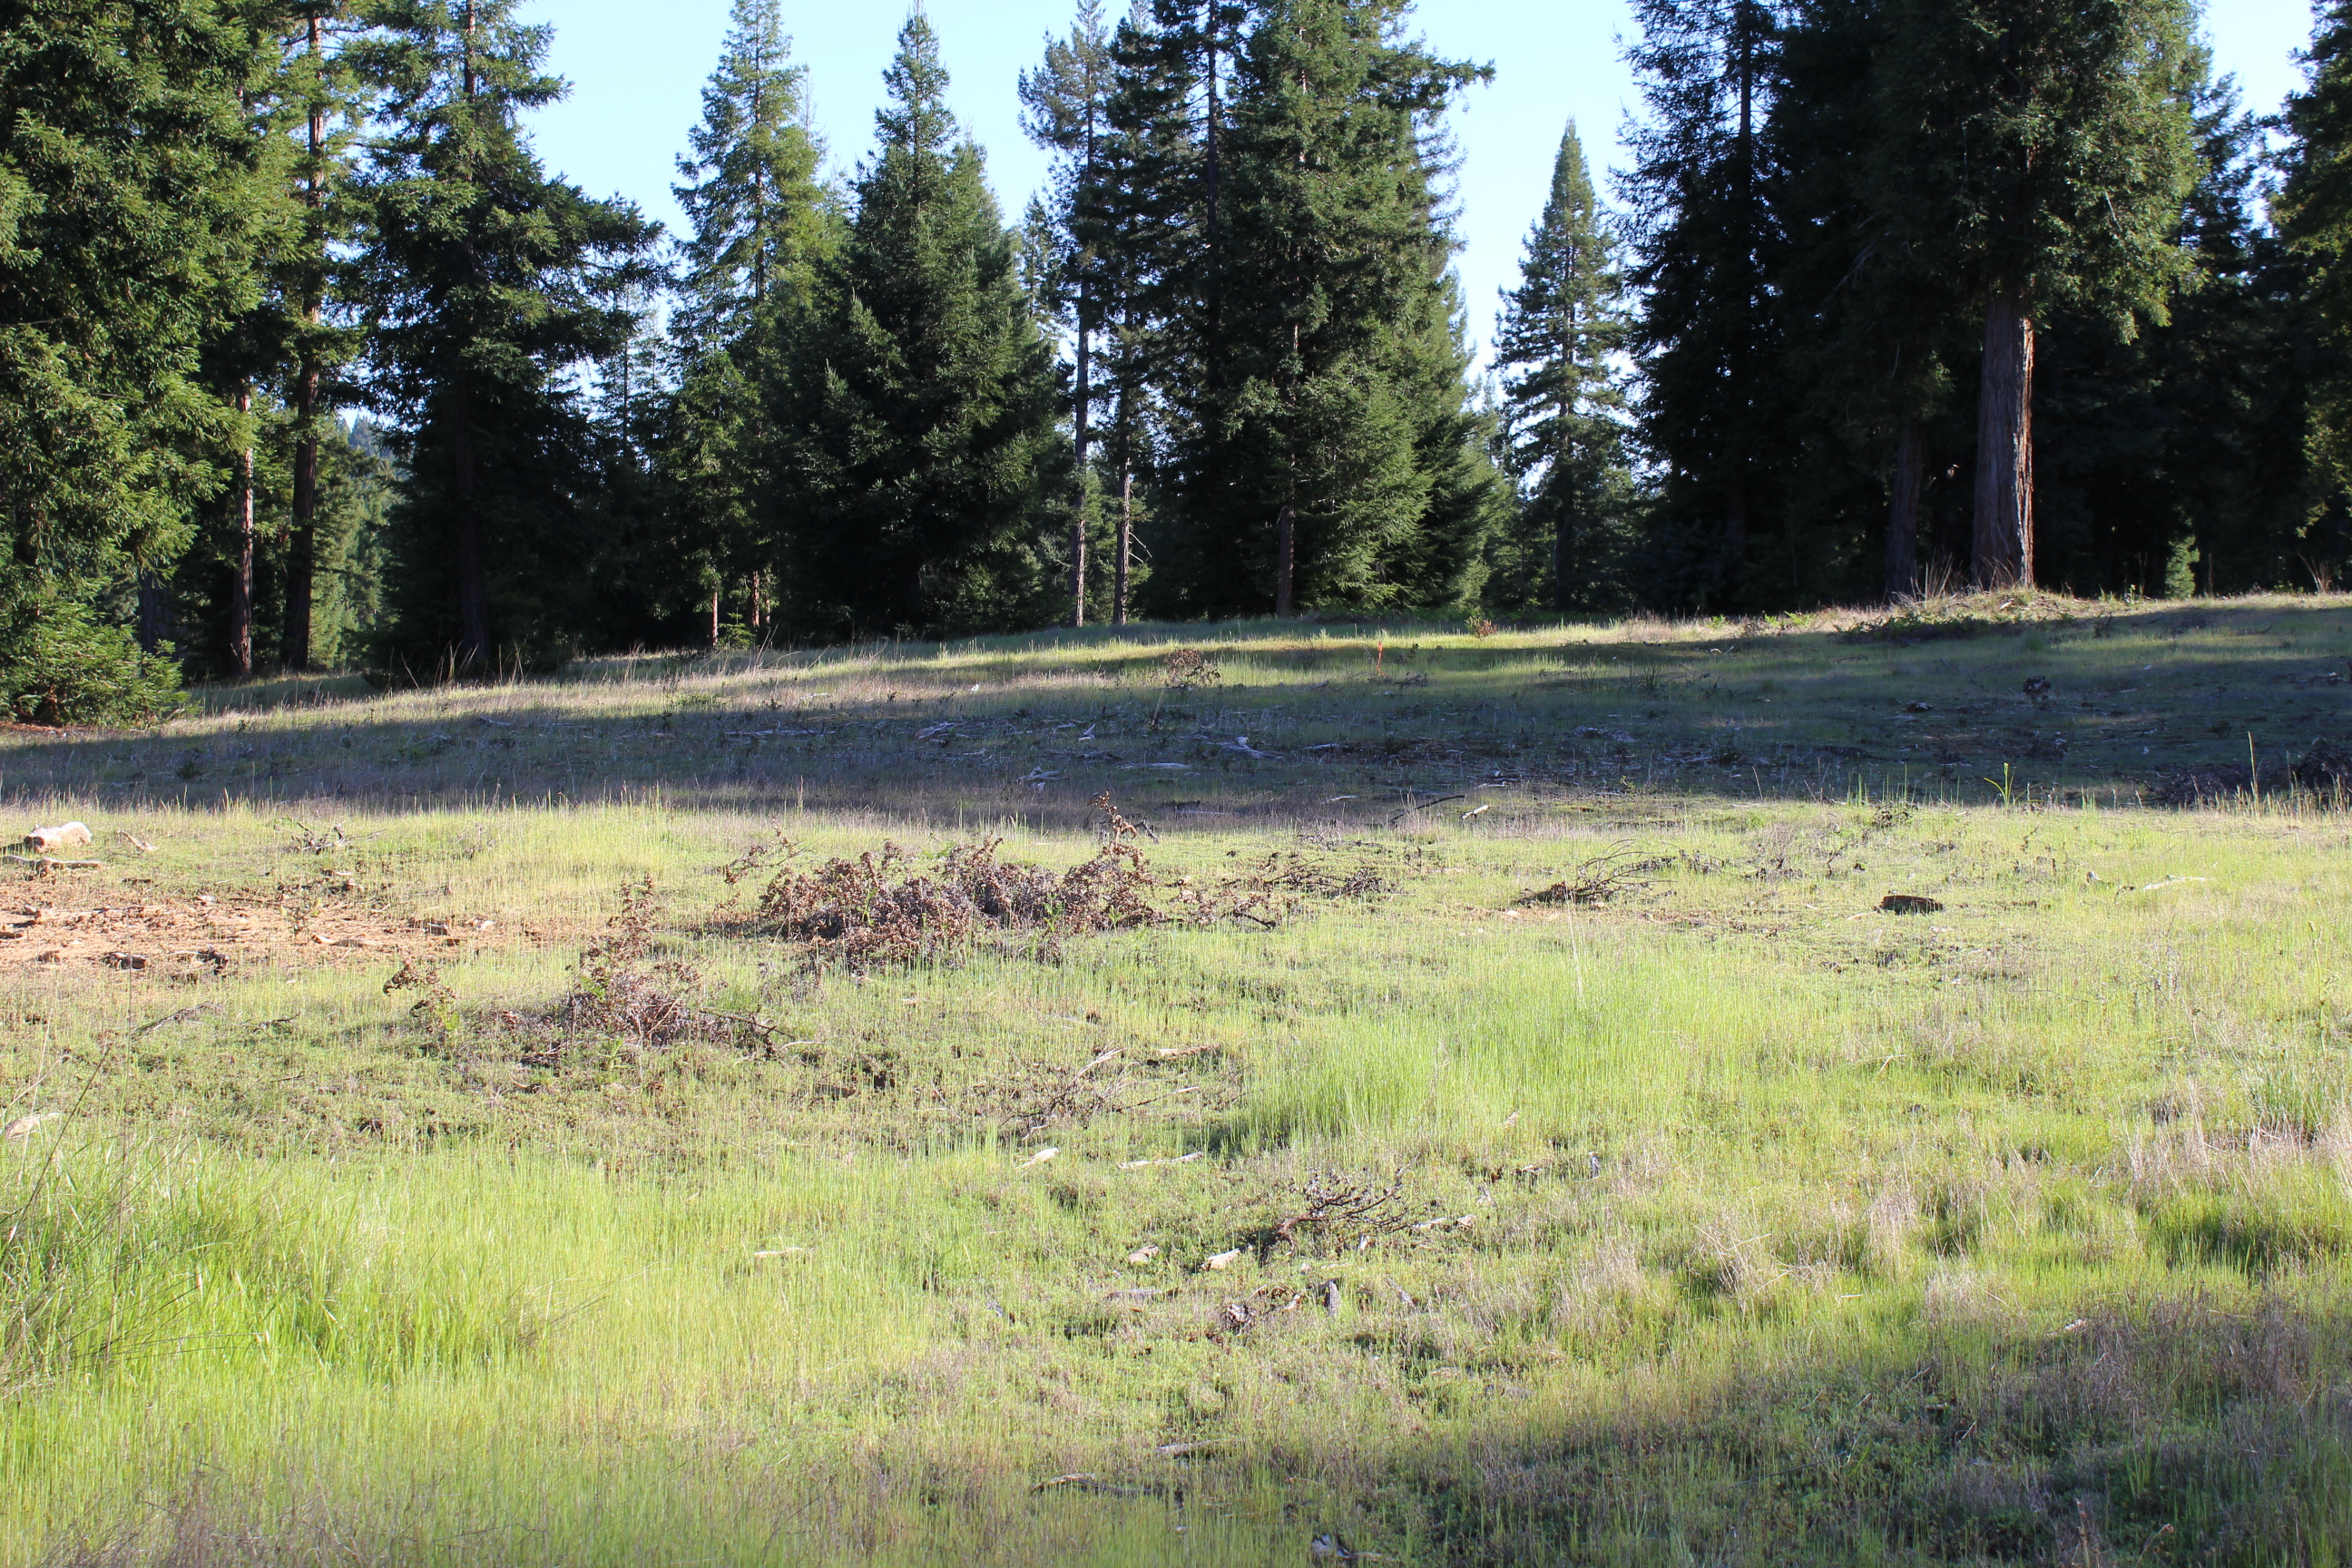 Such a pretty setting...work around the redwoods or do a 3 acre conversion (permit required)